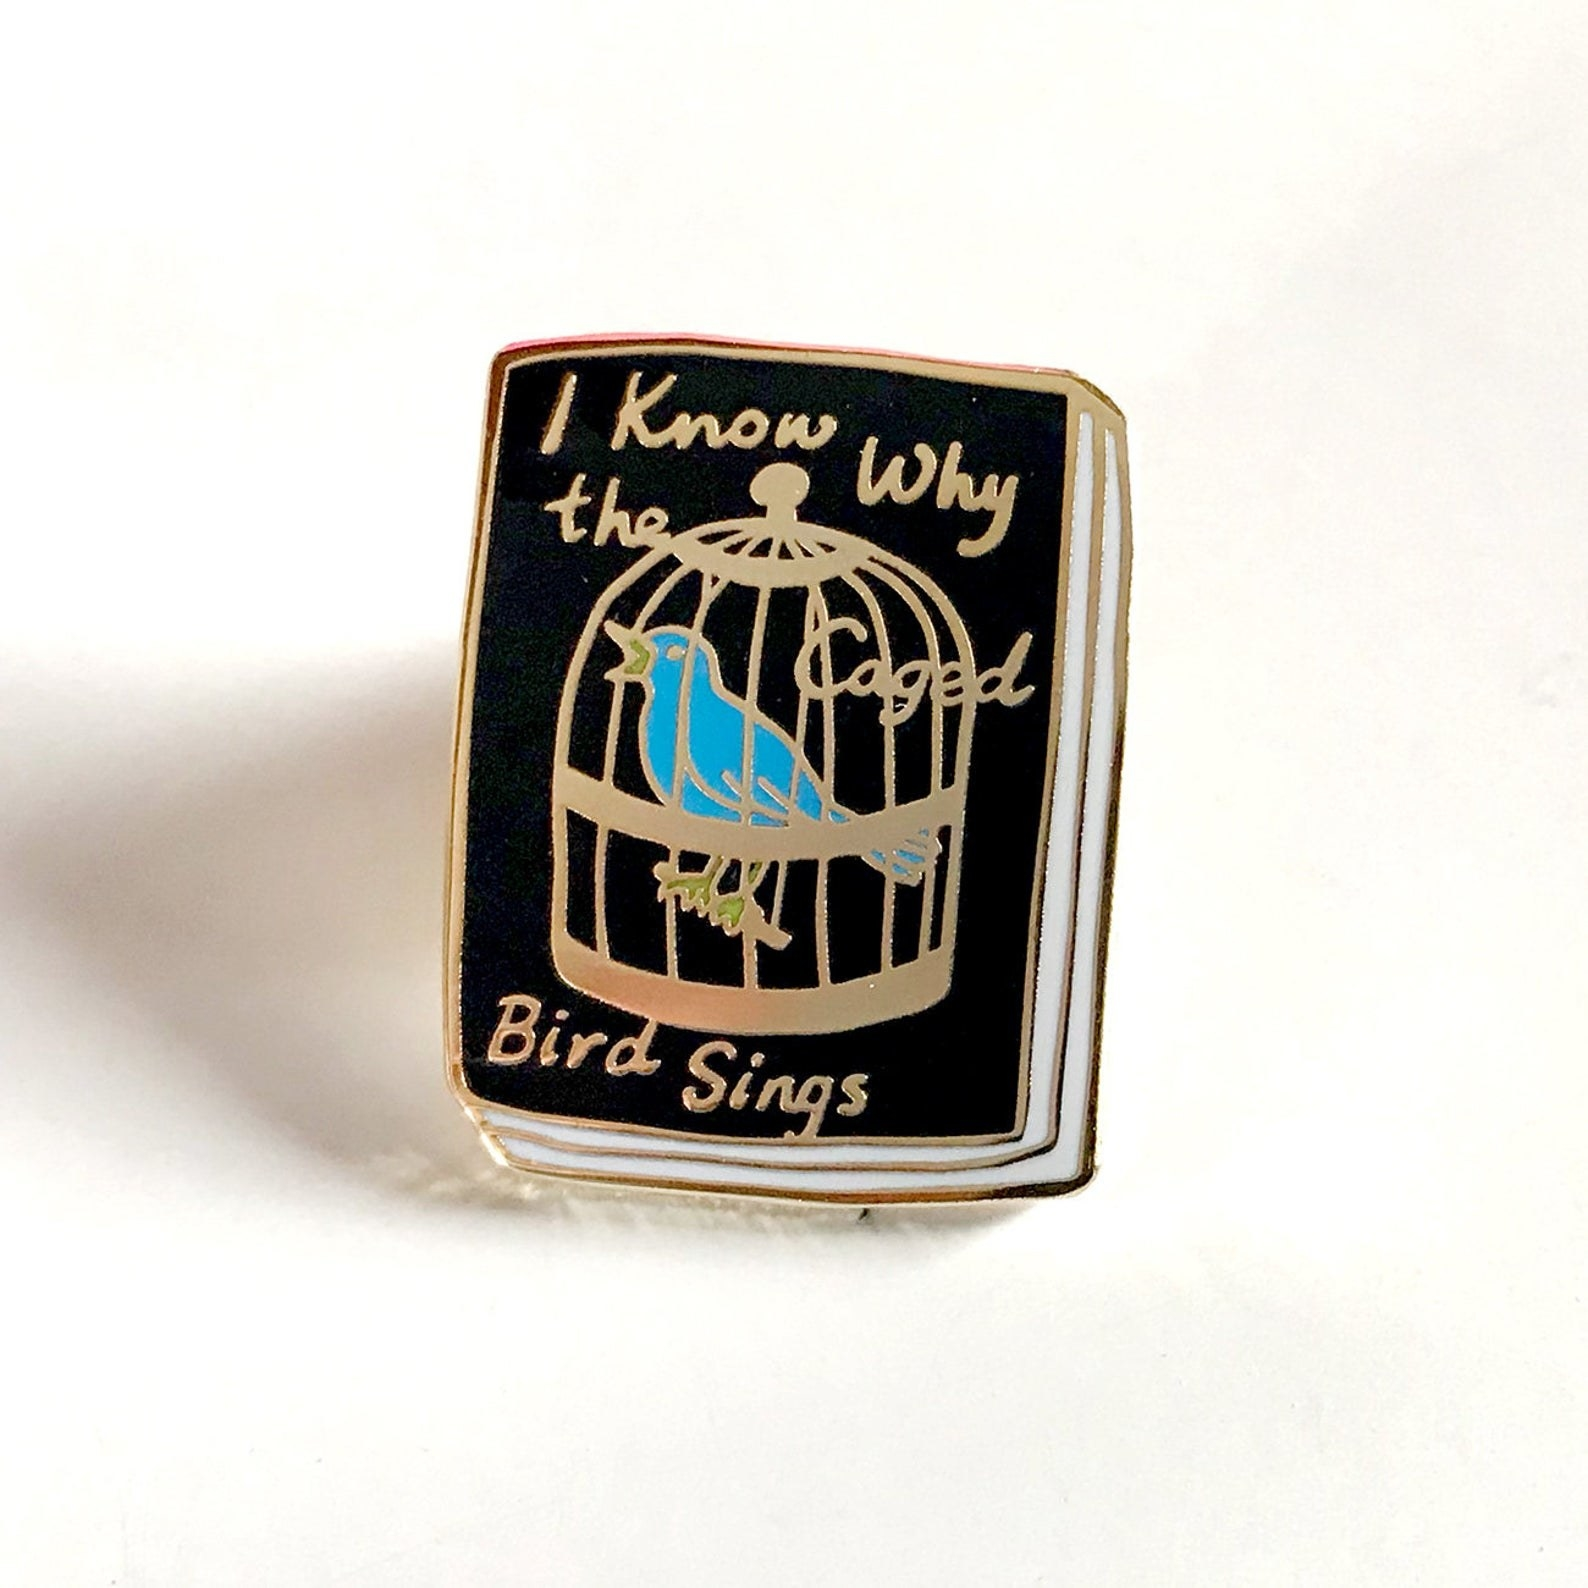 """Pin that looks like the book """"I Know why the caged bird sings"""" on it with a blue bird in a cage signing"""